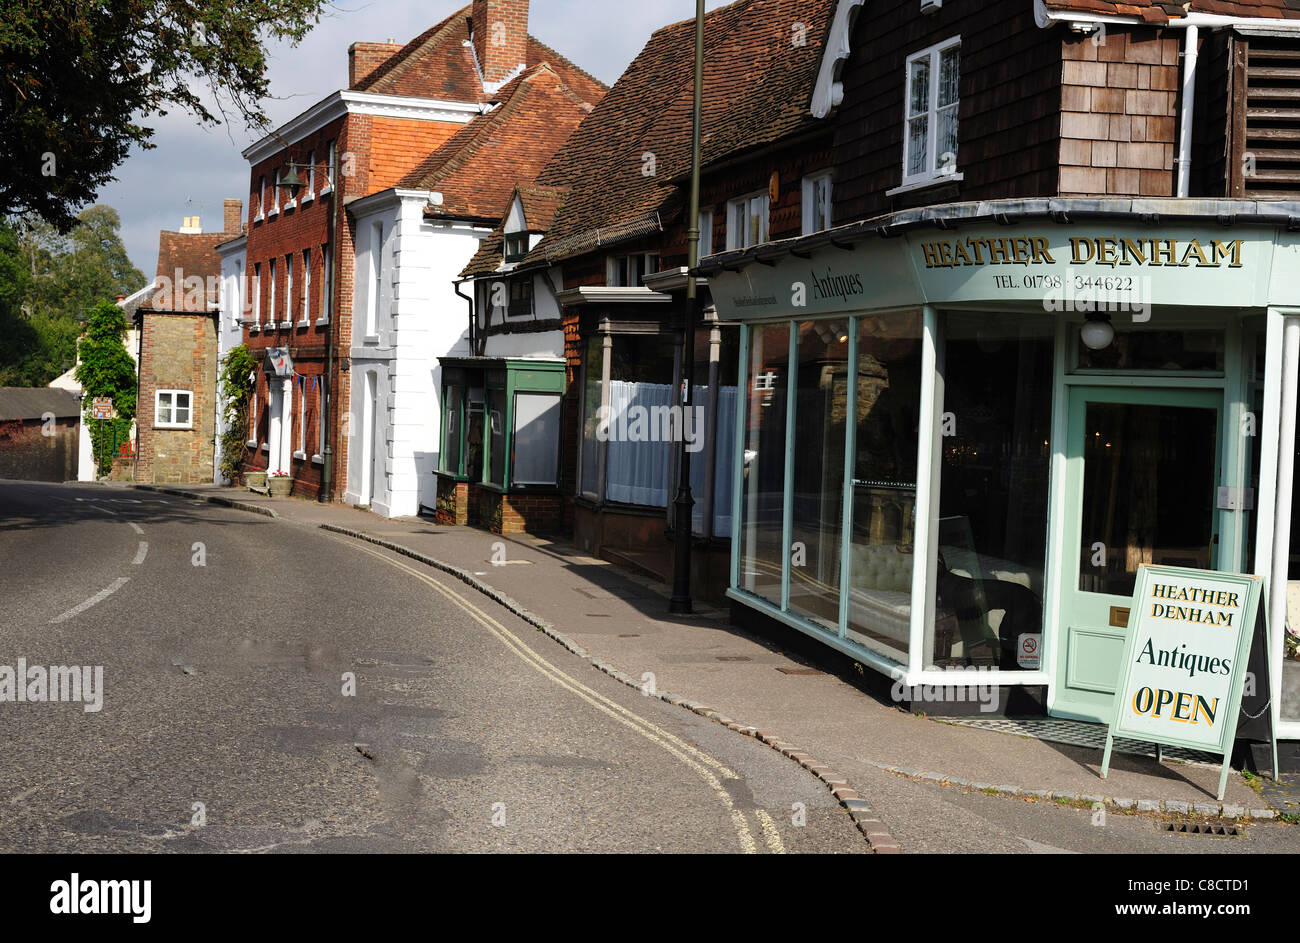 Petworth West Susex England - Stock Image